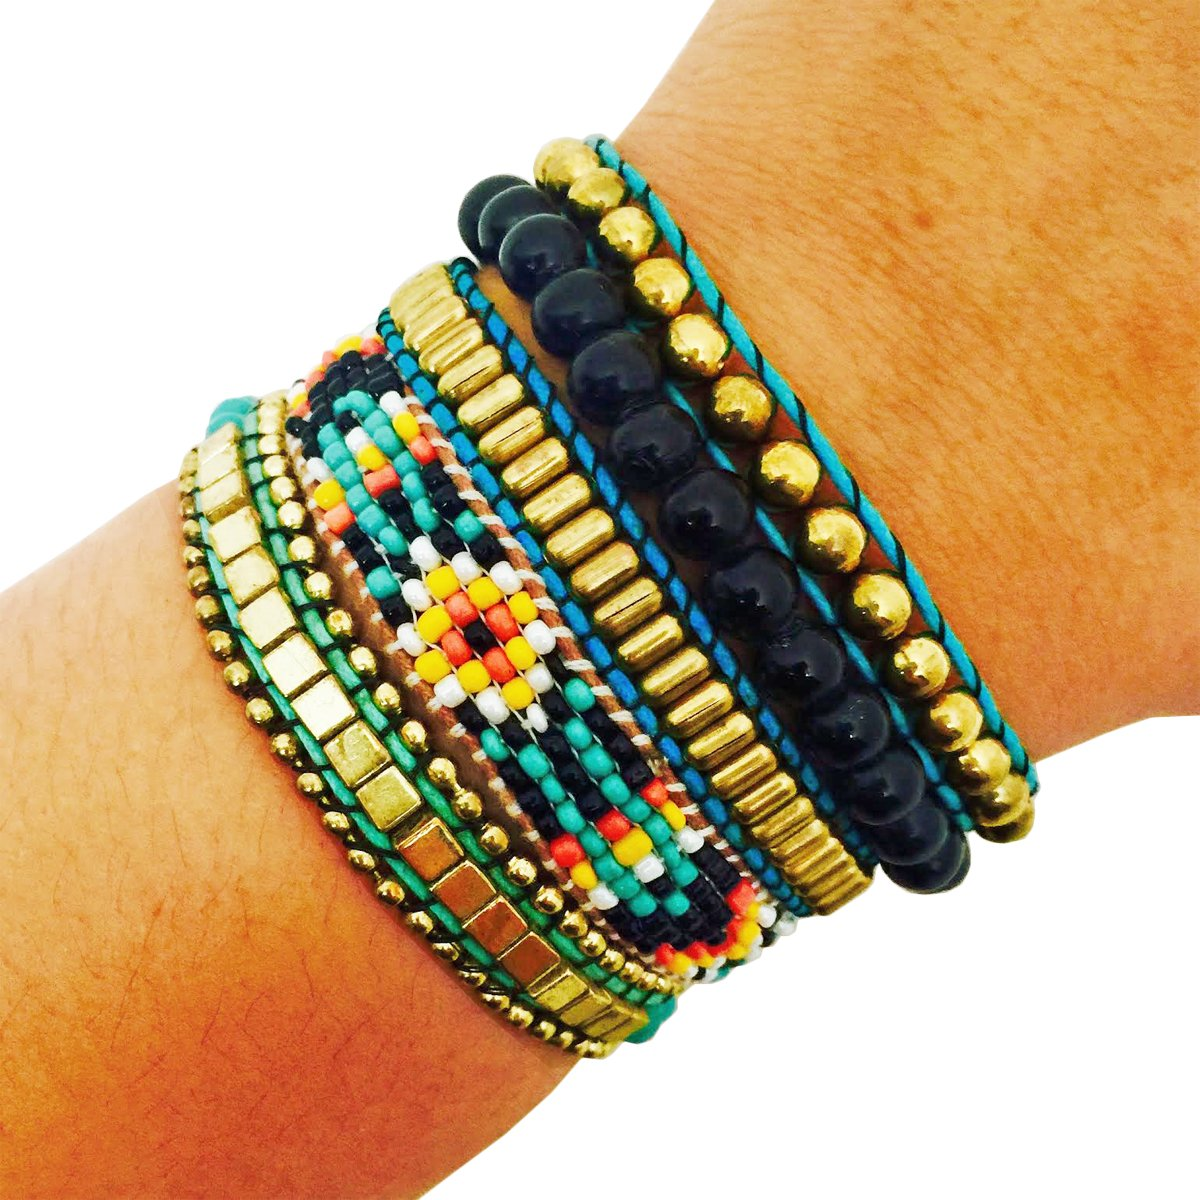 Activity Tracker Bracelet for Fitbit Flex and Other Fitness Trackers - The ROSIE Colorful Beaded, Braided Layered Snap Bracelet (Turquoise, Fitbit Flex)